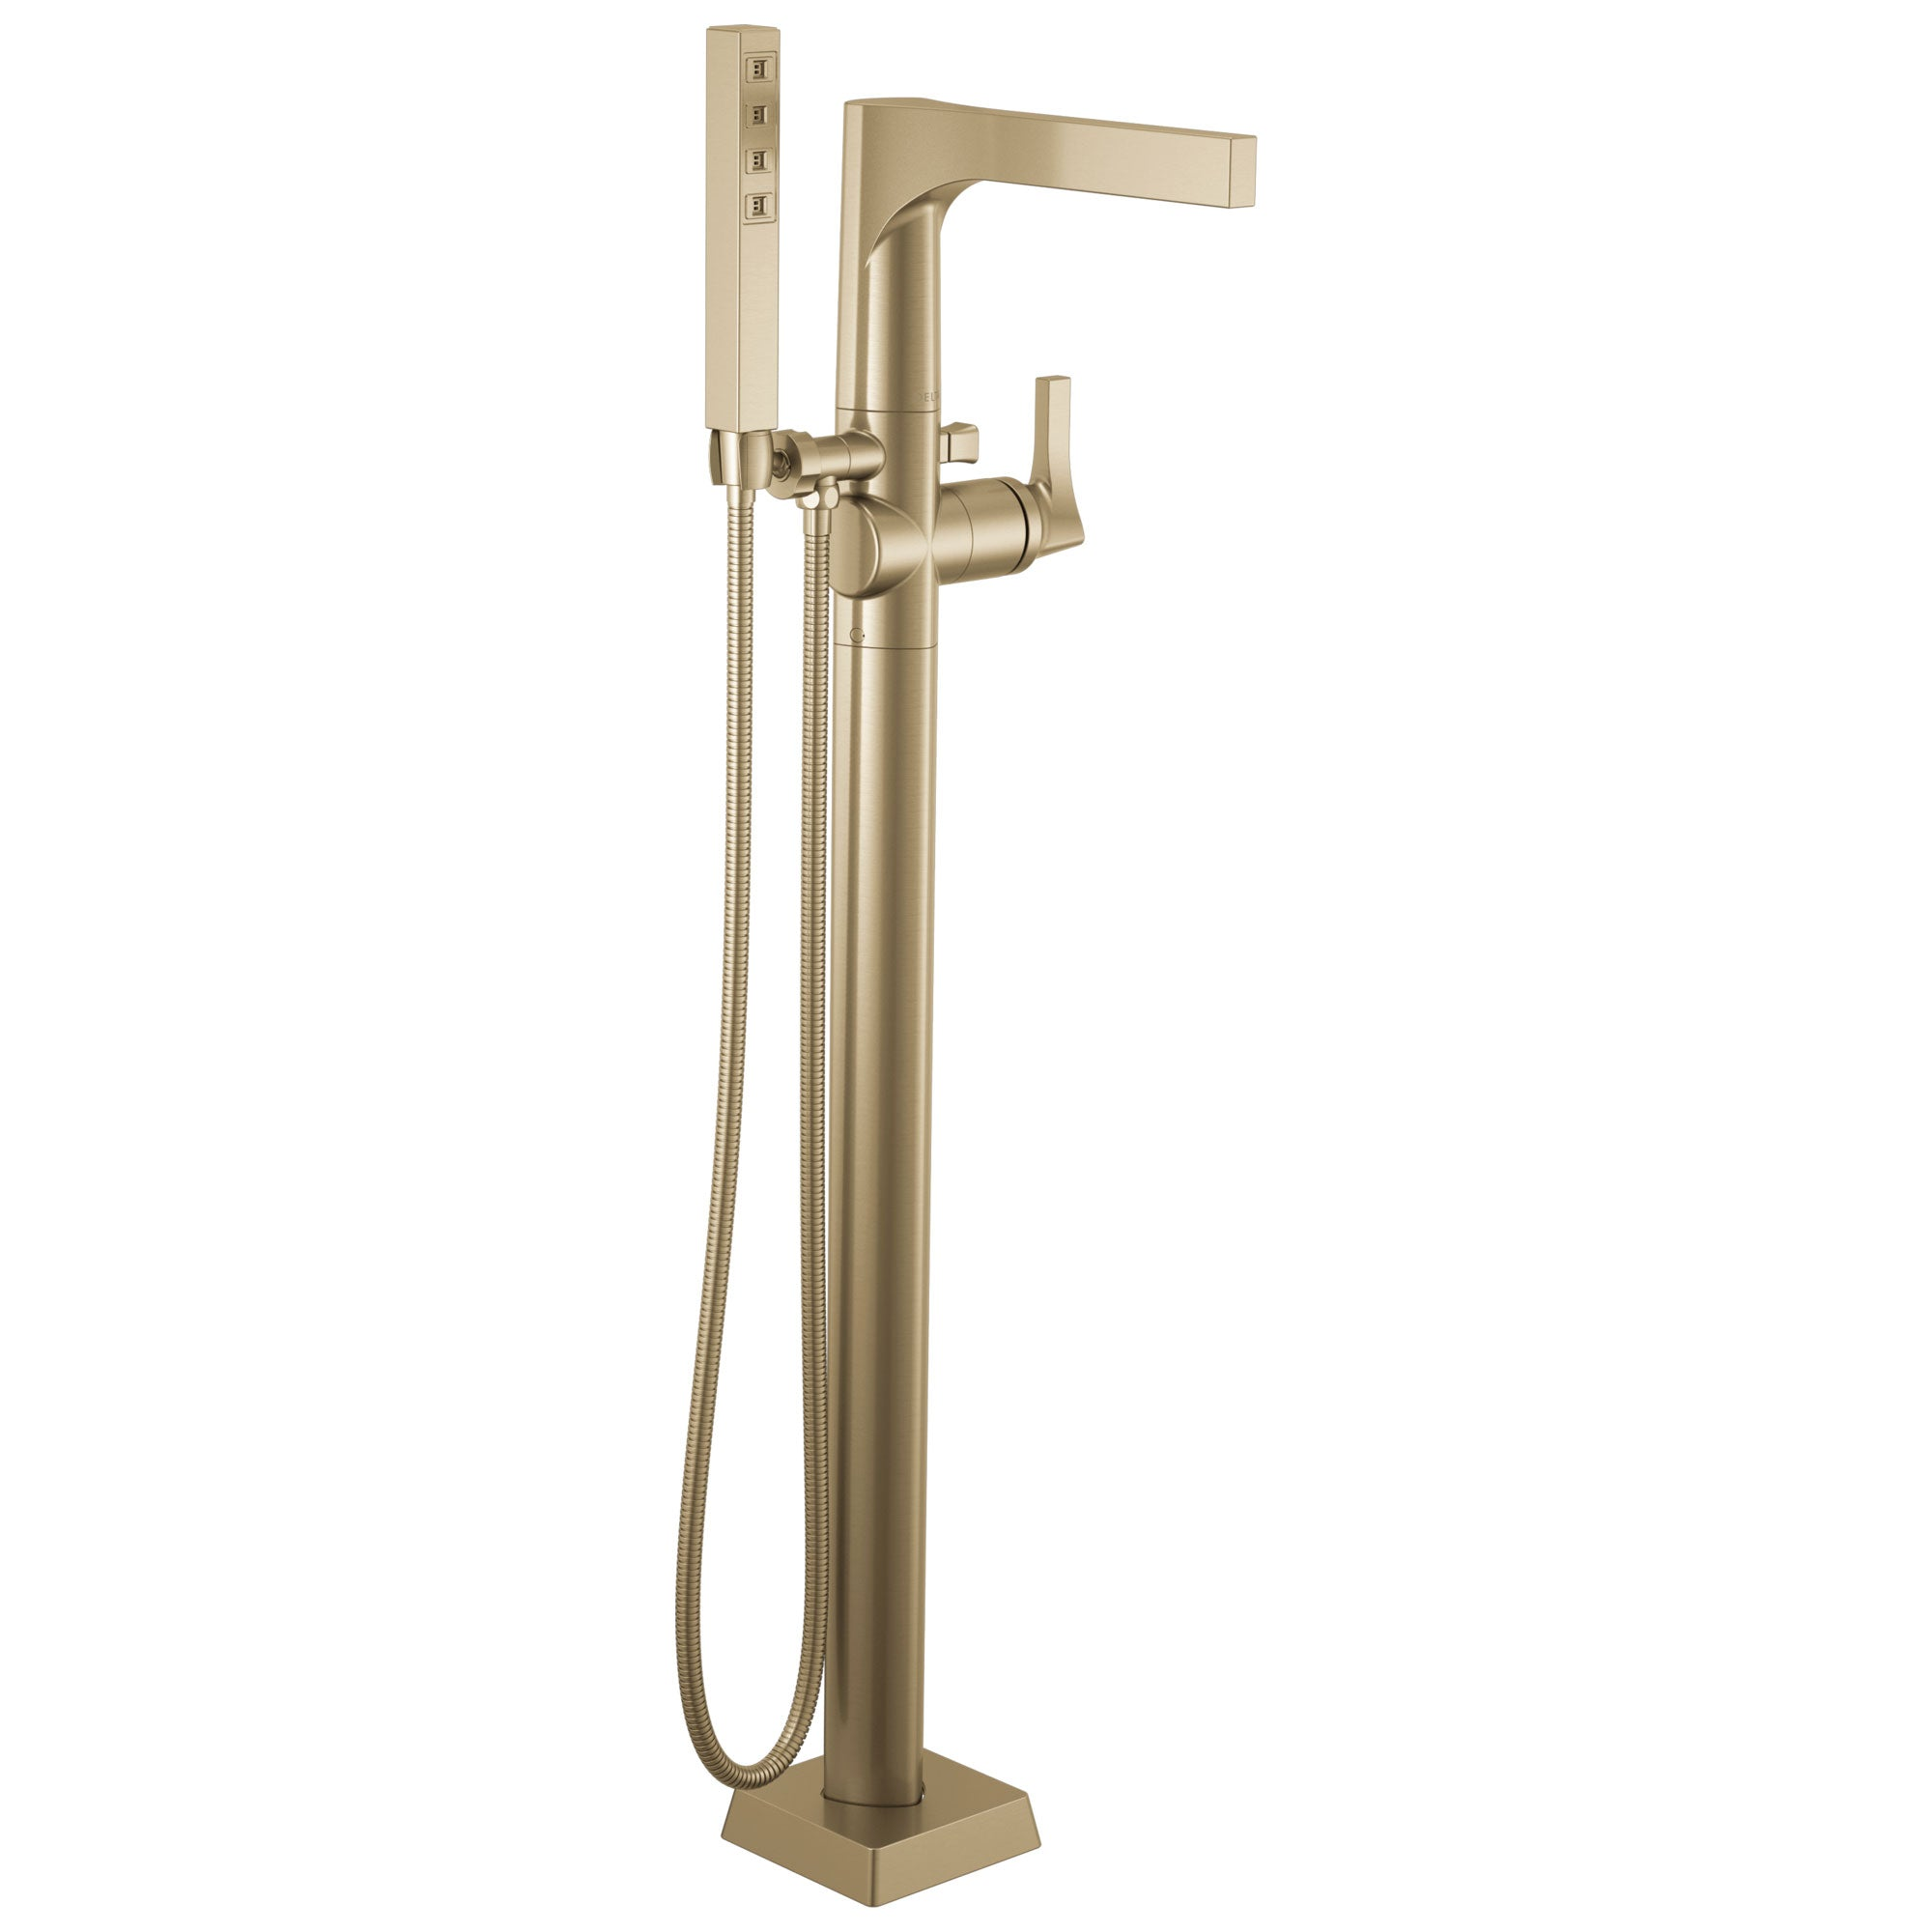 Delta Zura Champagne Bronze Finish Single Handle Floor Mount Tub Filler Faucet with Hand Shower Trim Kit (Requires Valve) DT4774CZFL